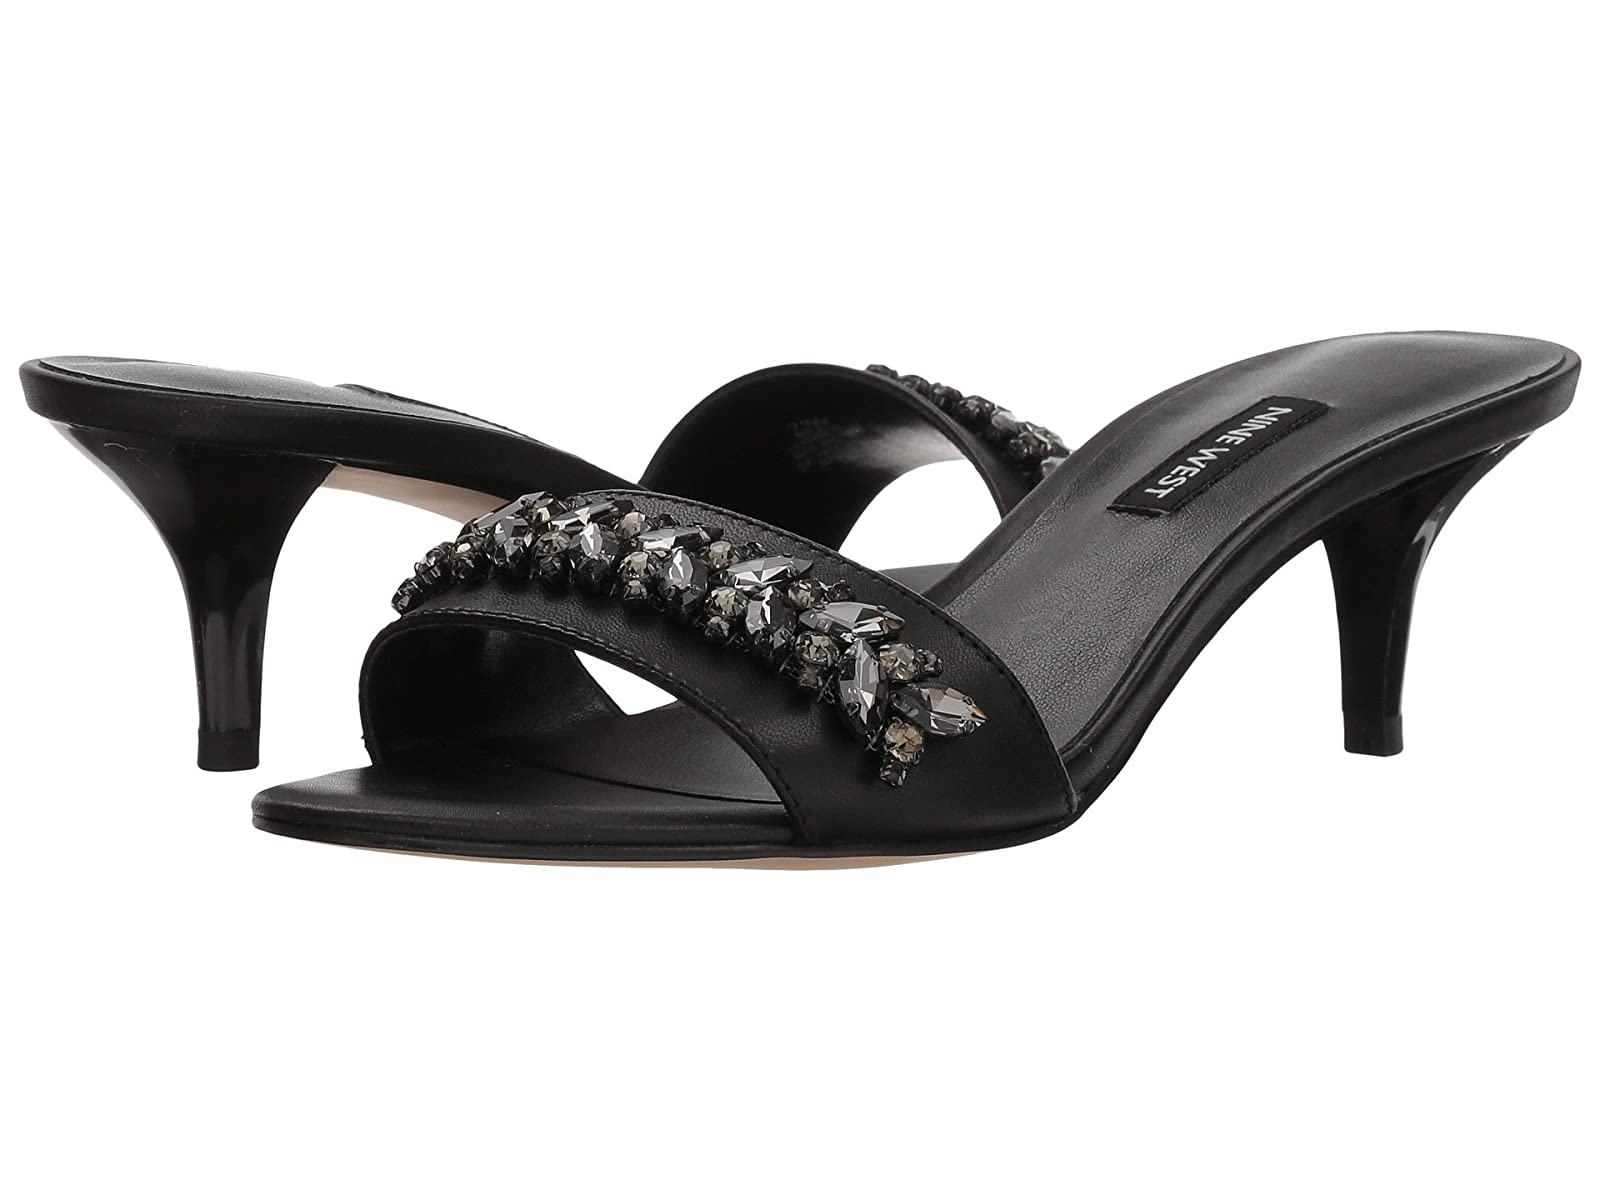 Nine West LelonCheap and distinctive eye-catching shoes